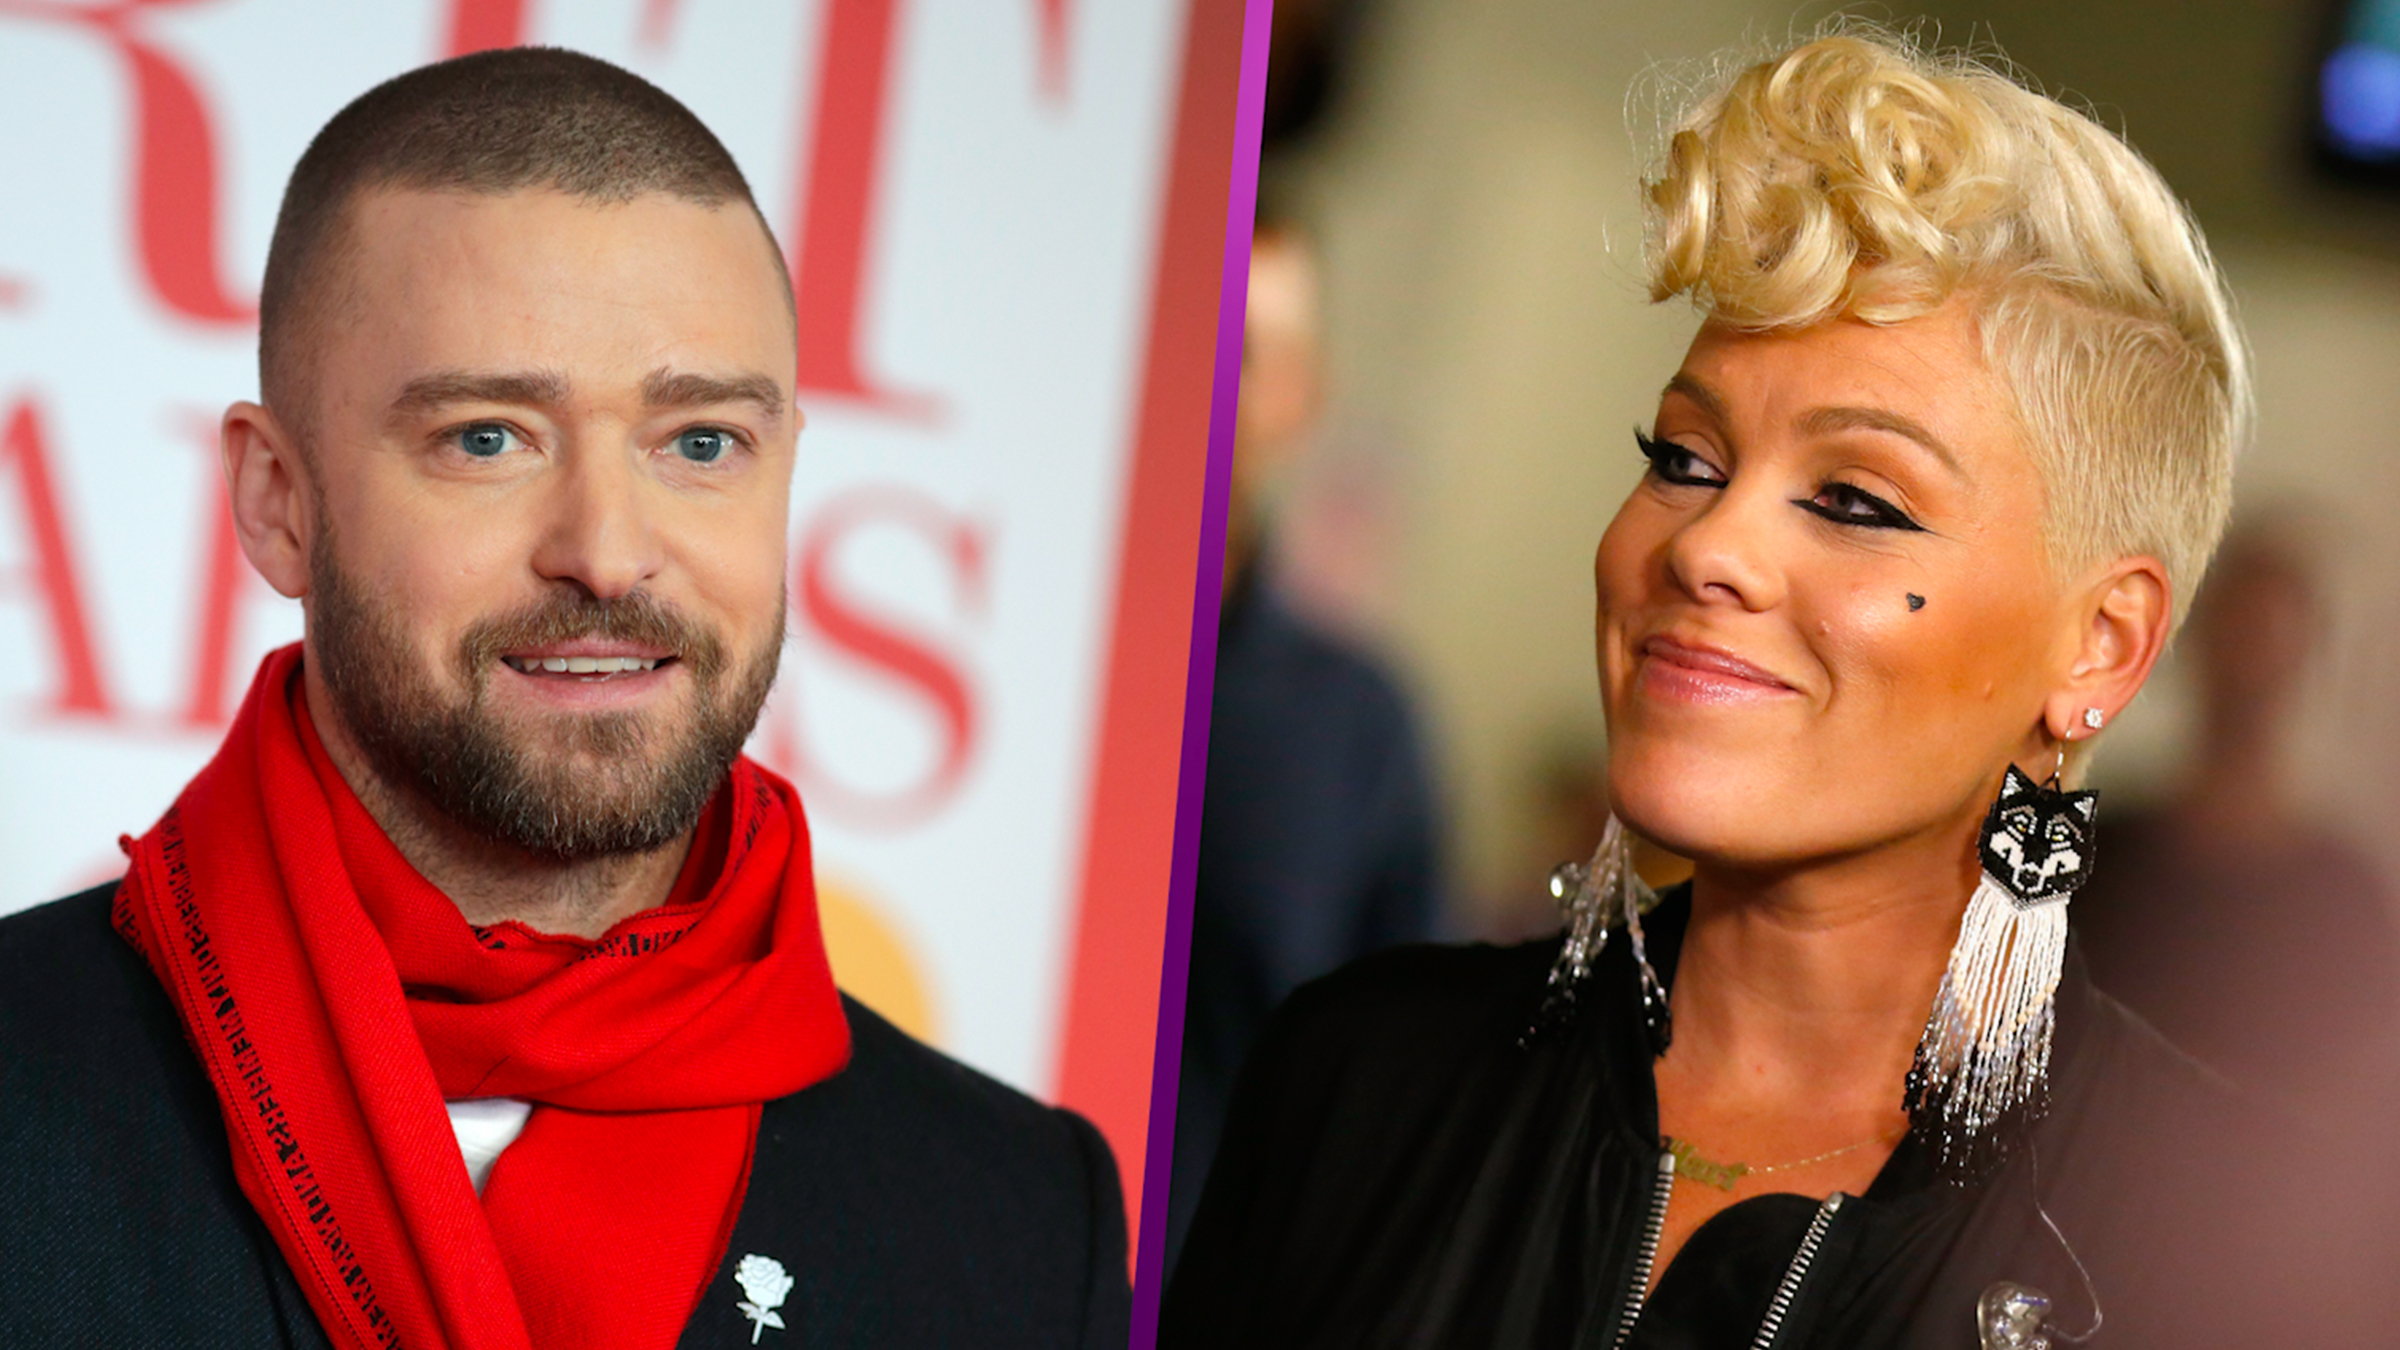 Justin Timberlake Supports Pink After She Cancels Tour Date Due To Illness: 'You Won't Find A Harder Working' Artist